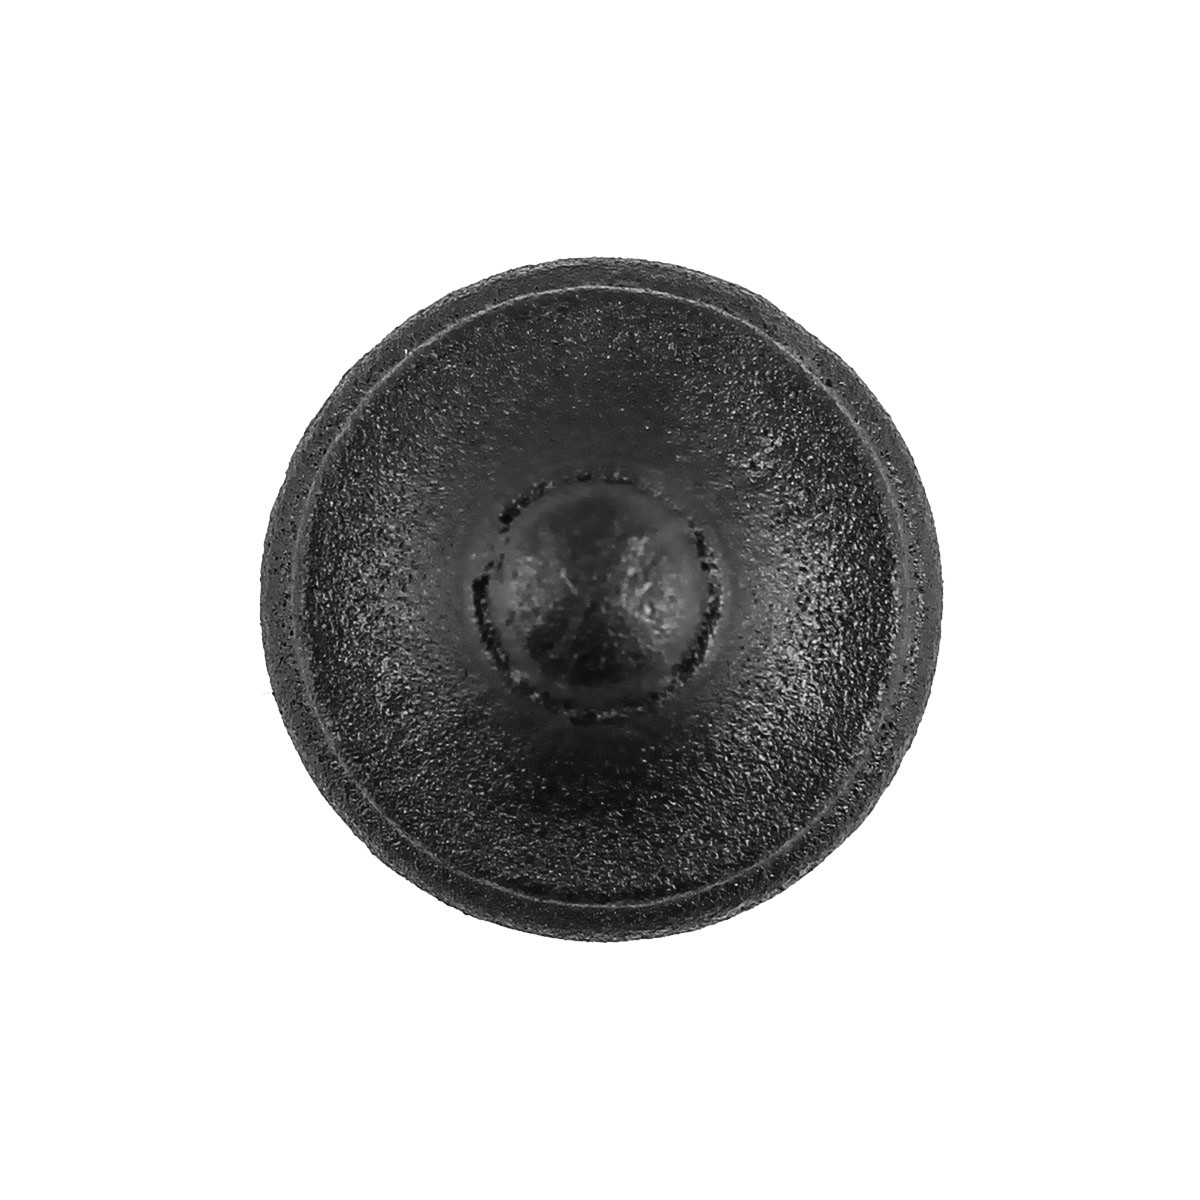 Round Kitchen Cabinet Knobs Set of 10 Cast Iron 1 Diameter Cabinetry Pulls Small Black Cabinet Knob Kitchen Remodel Cabinetry Hardware pull handles Cabinet Knob